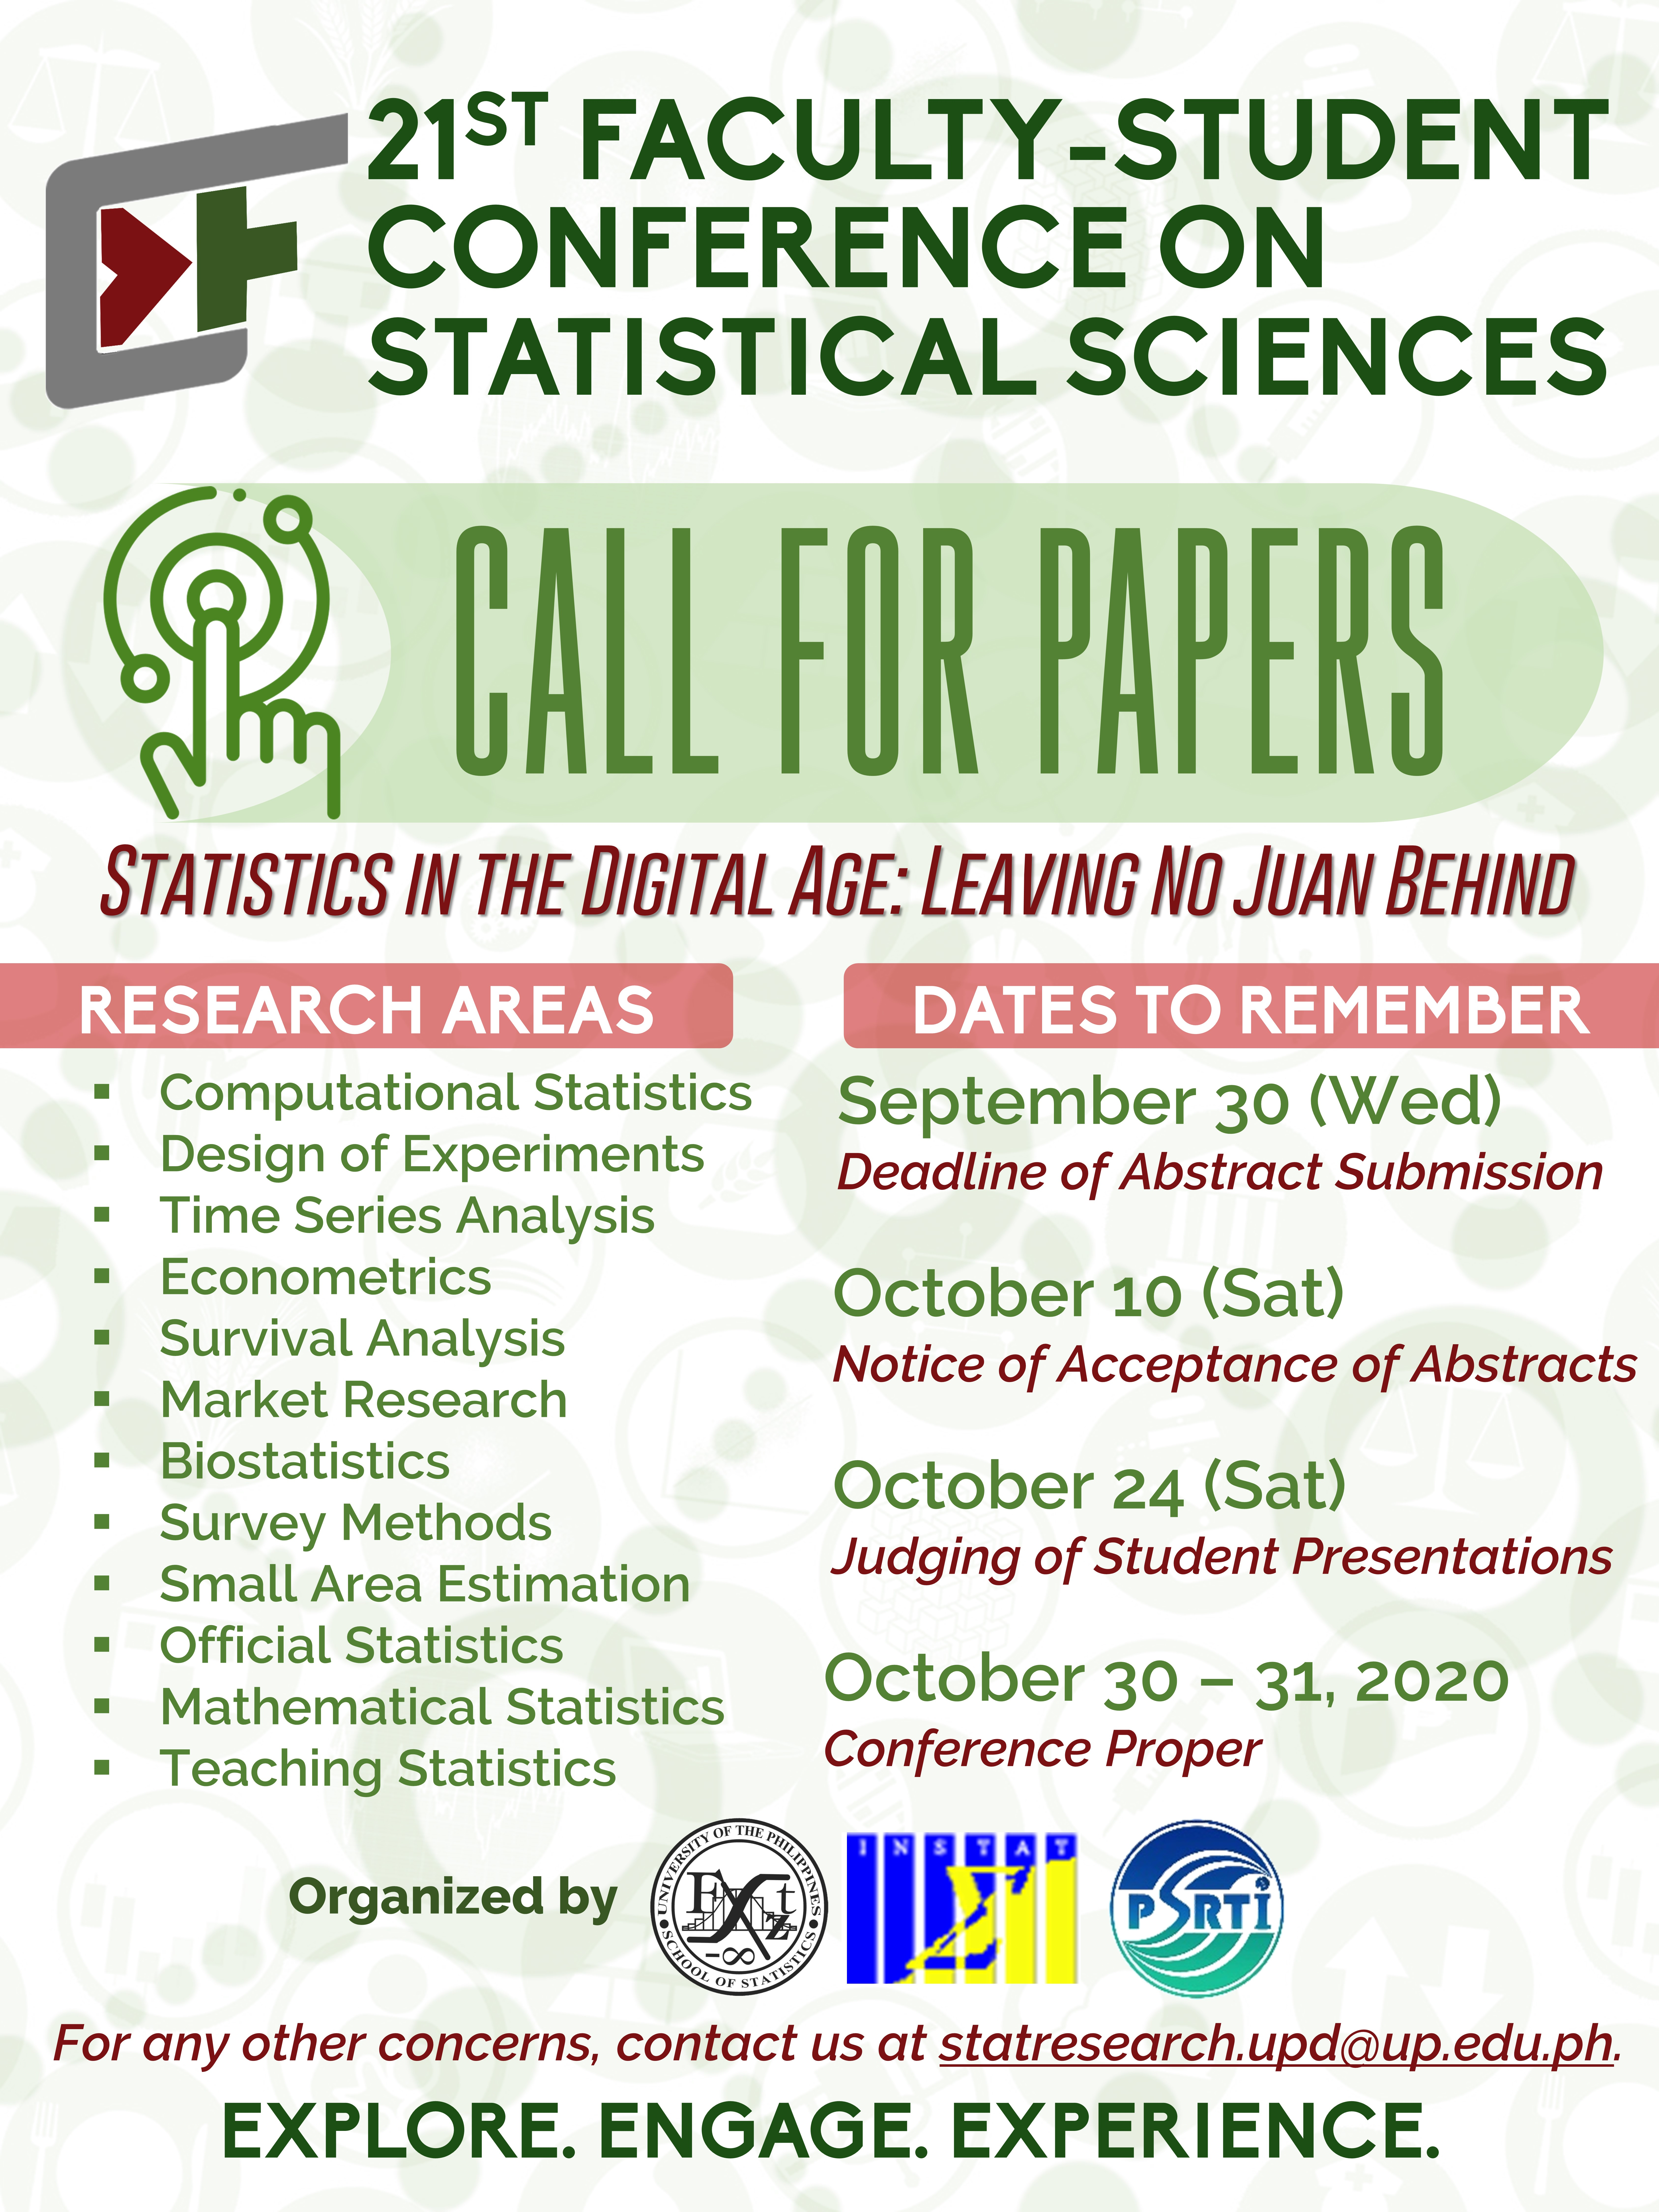 Image for 21st Faculty-Student Conference on Statistical Sciences